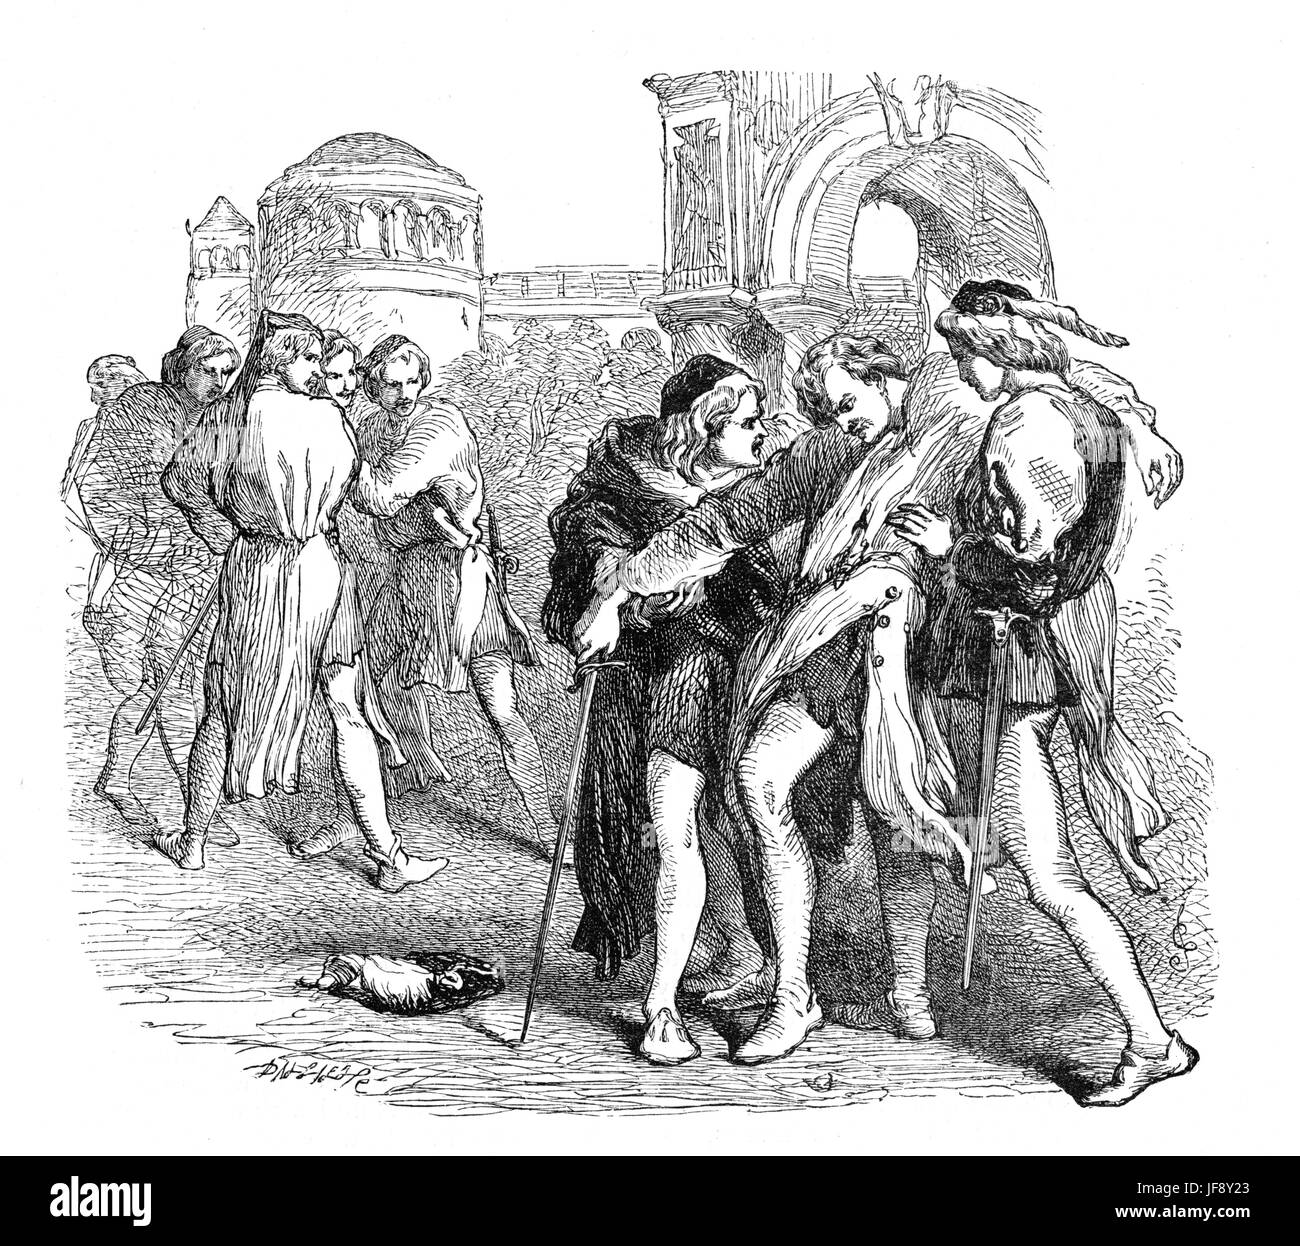 Romeo and Juliet, play by William Shakespeare (26 April 1564 – 23 April 1616). Act 3 scene 1, Mercutio is killed - Stock Image